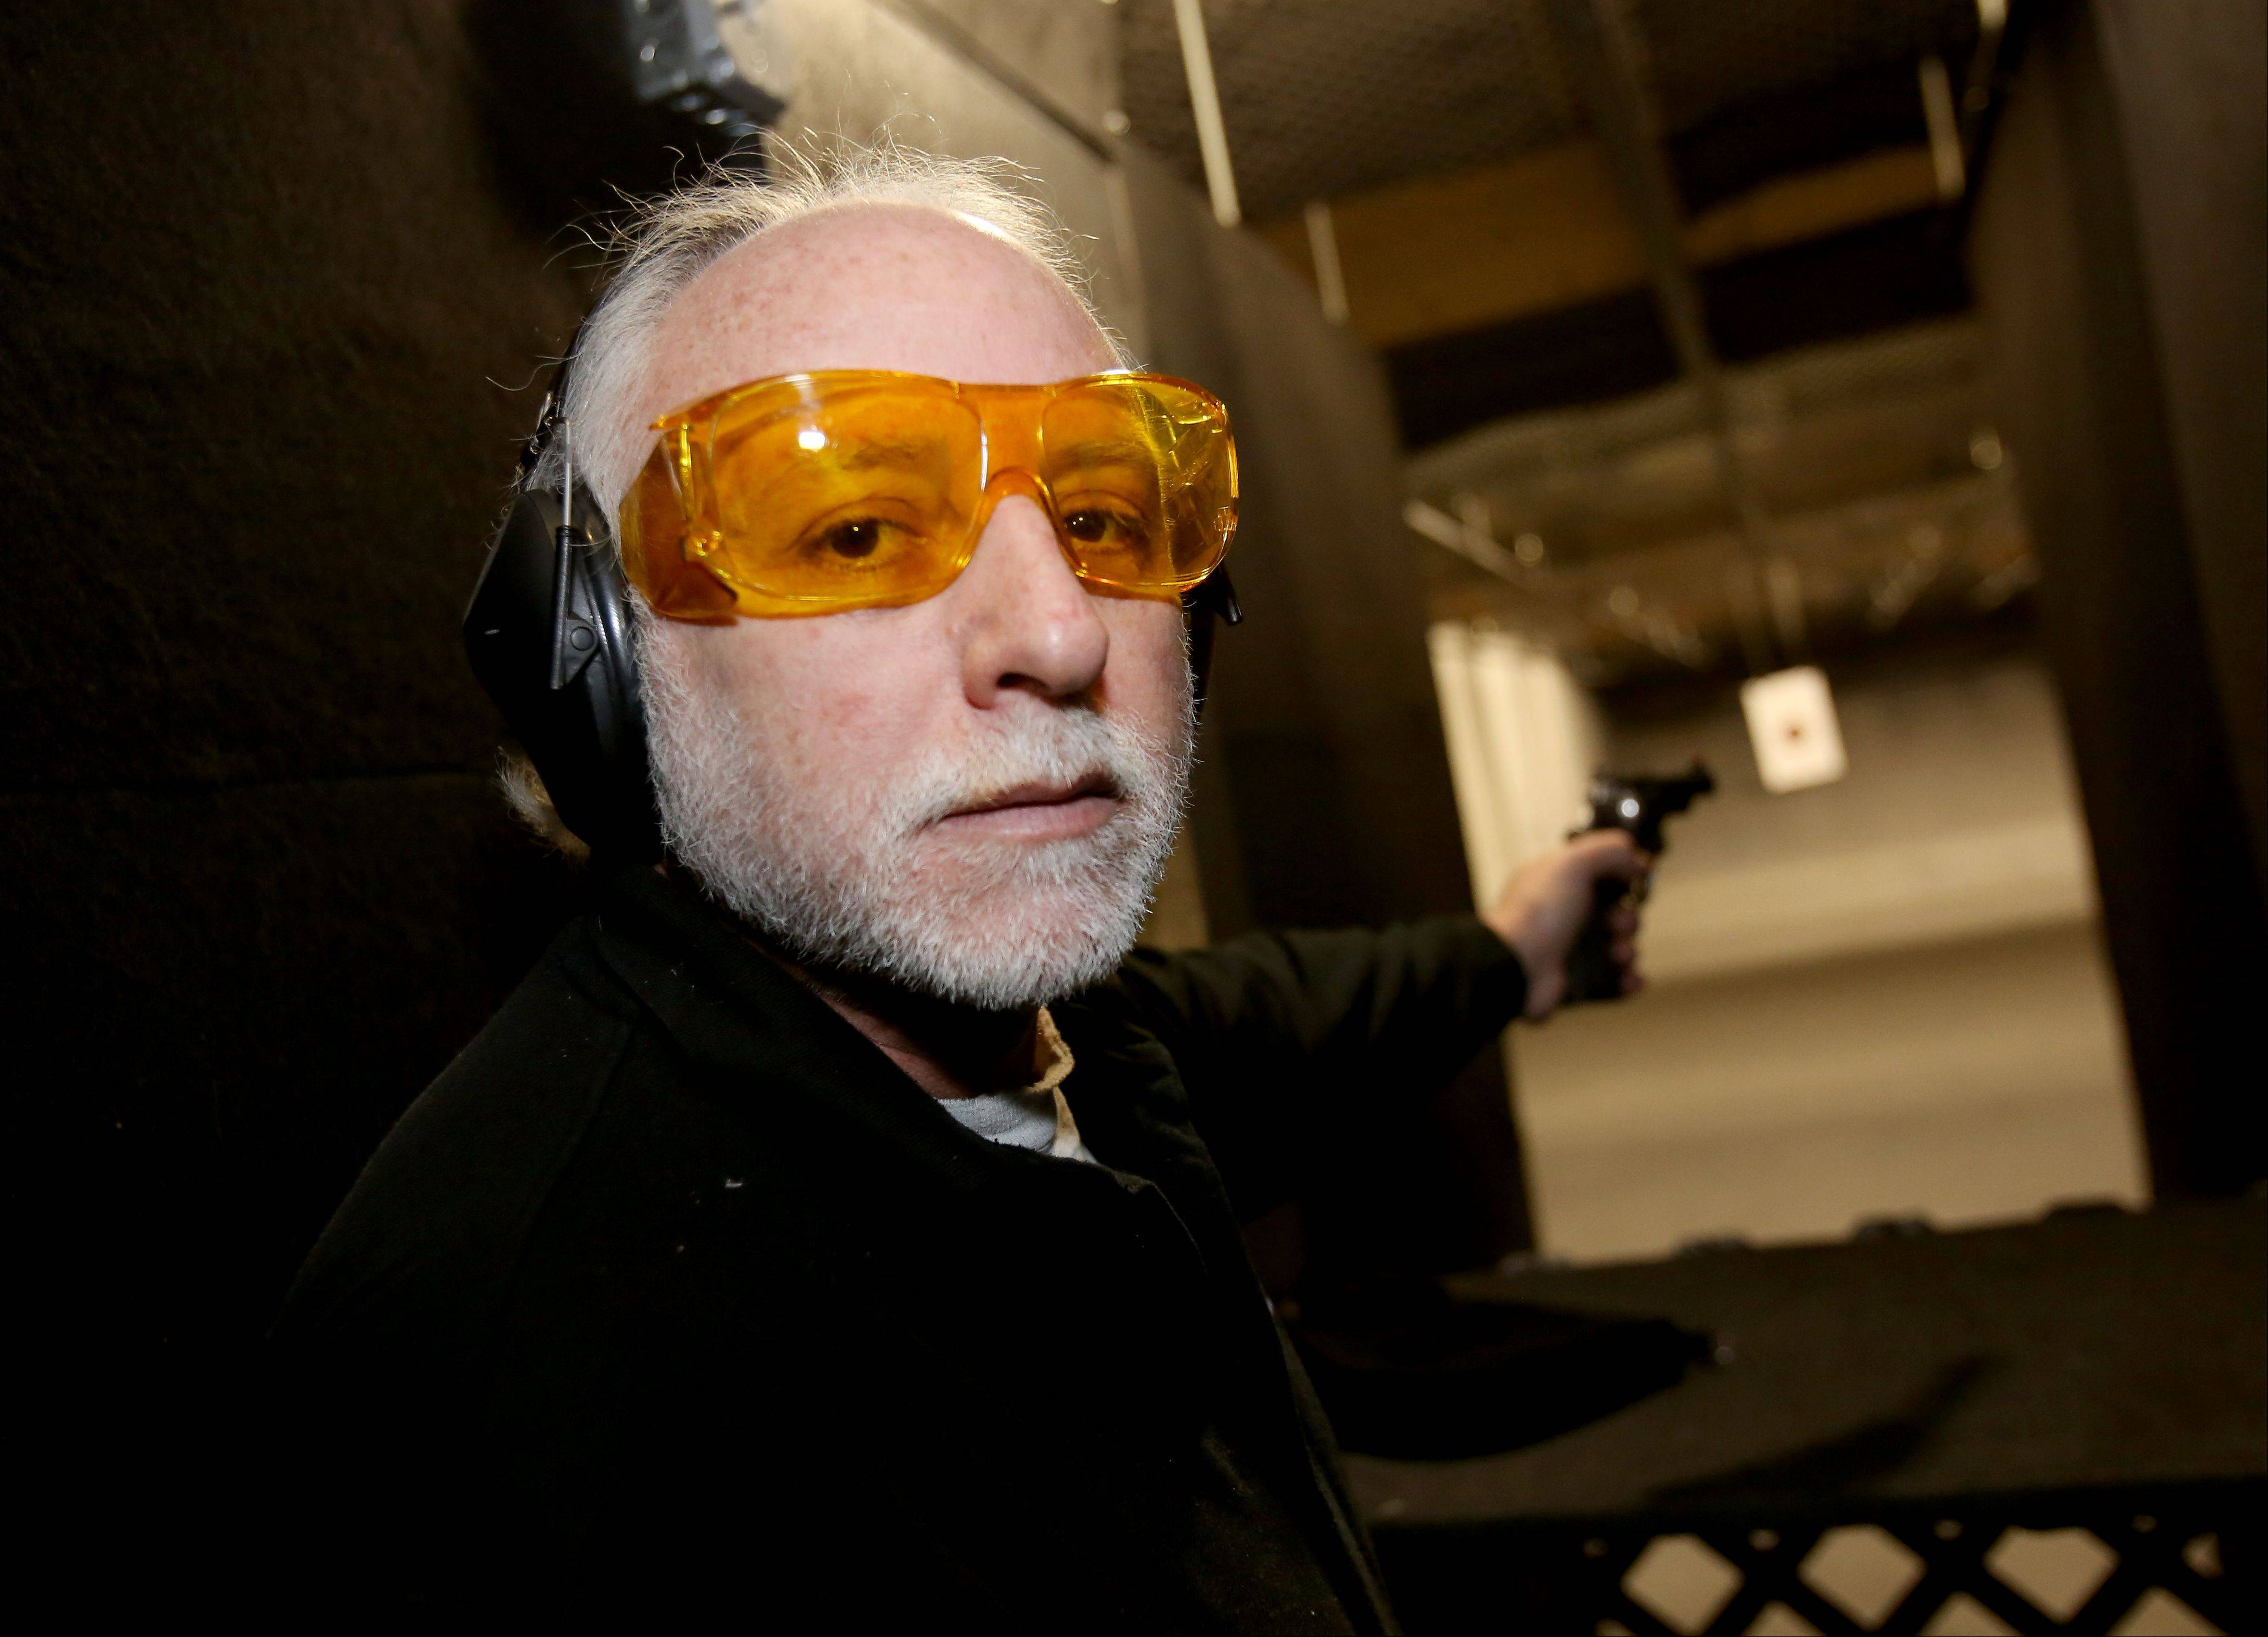 Barry Soskin at his Article II Range in Lombard. Suburban instructors are seeing a spike in demand for training sessions required to get a concealed carry license in Illinois.